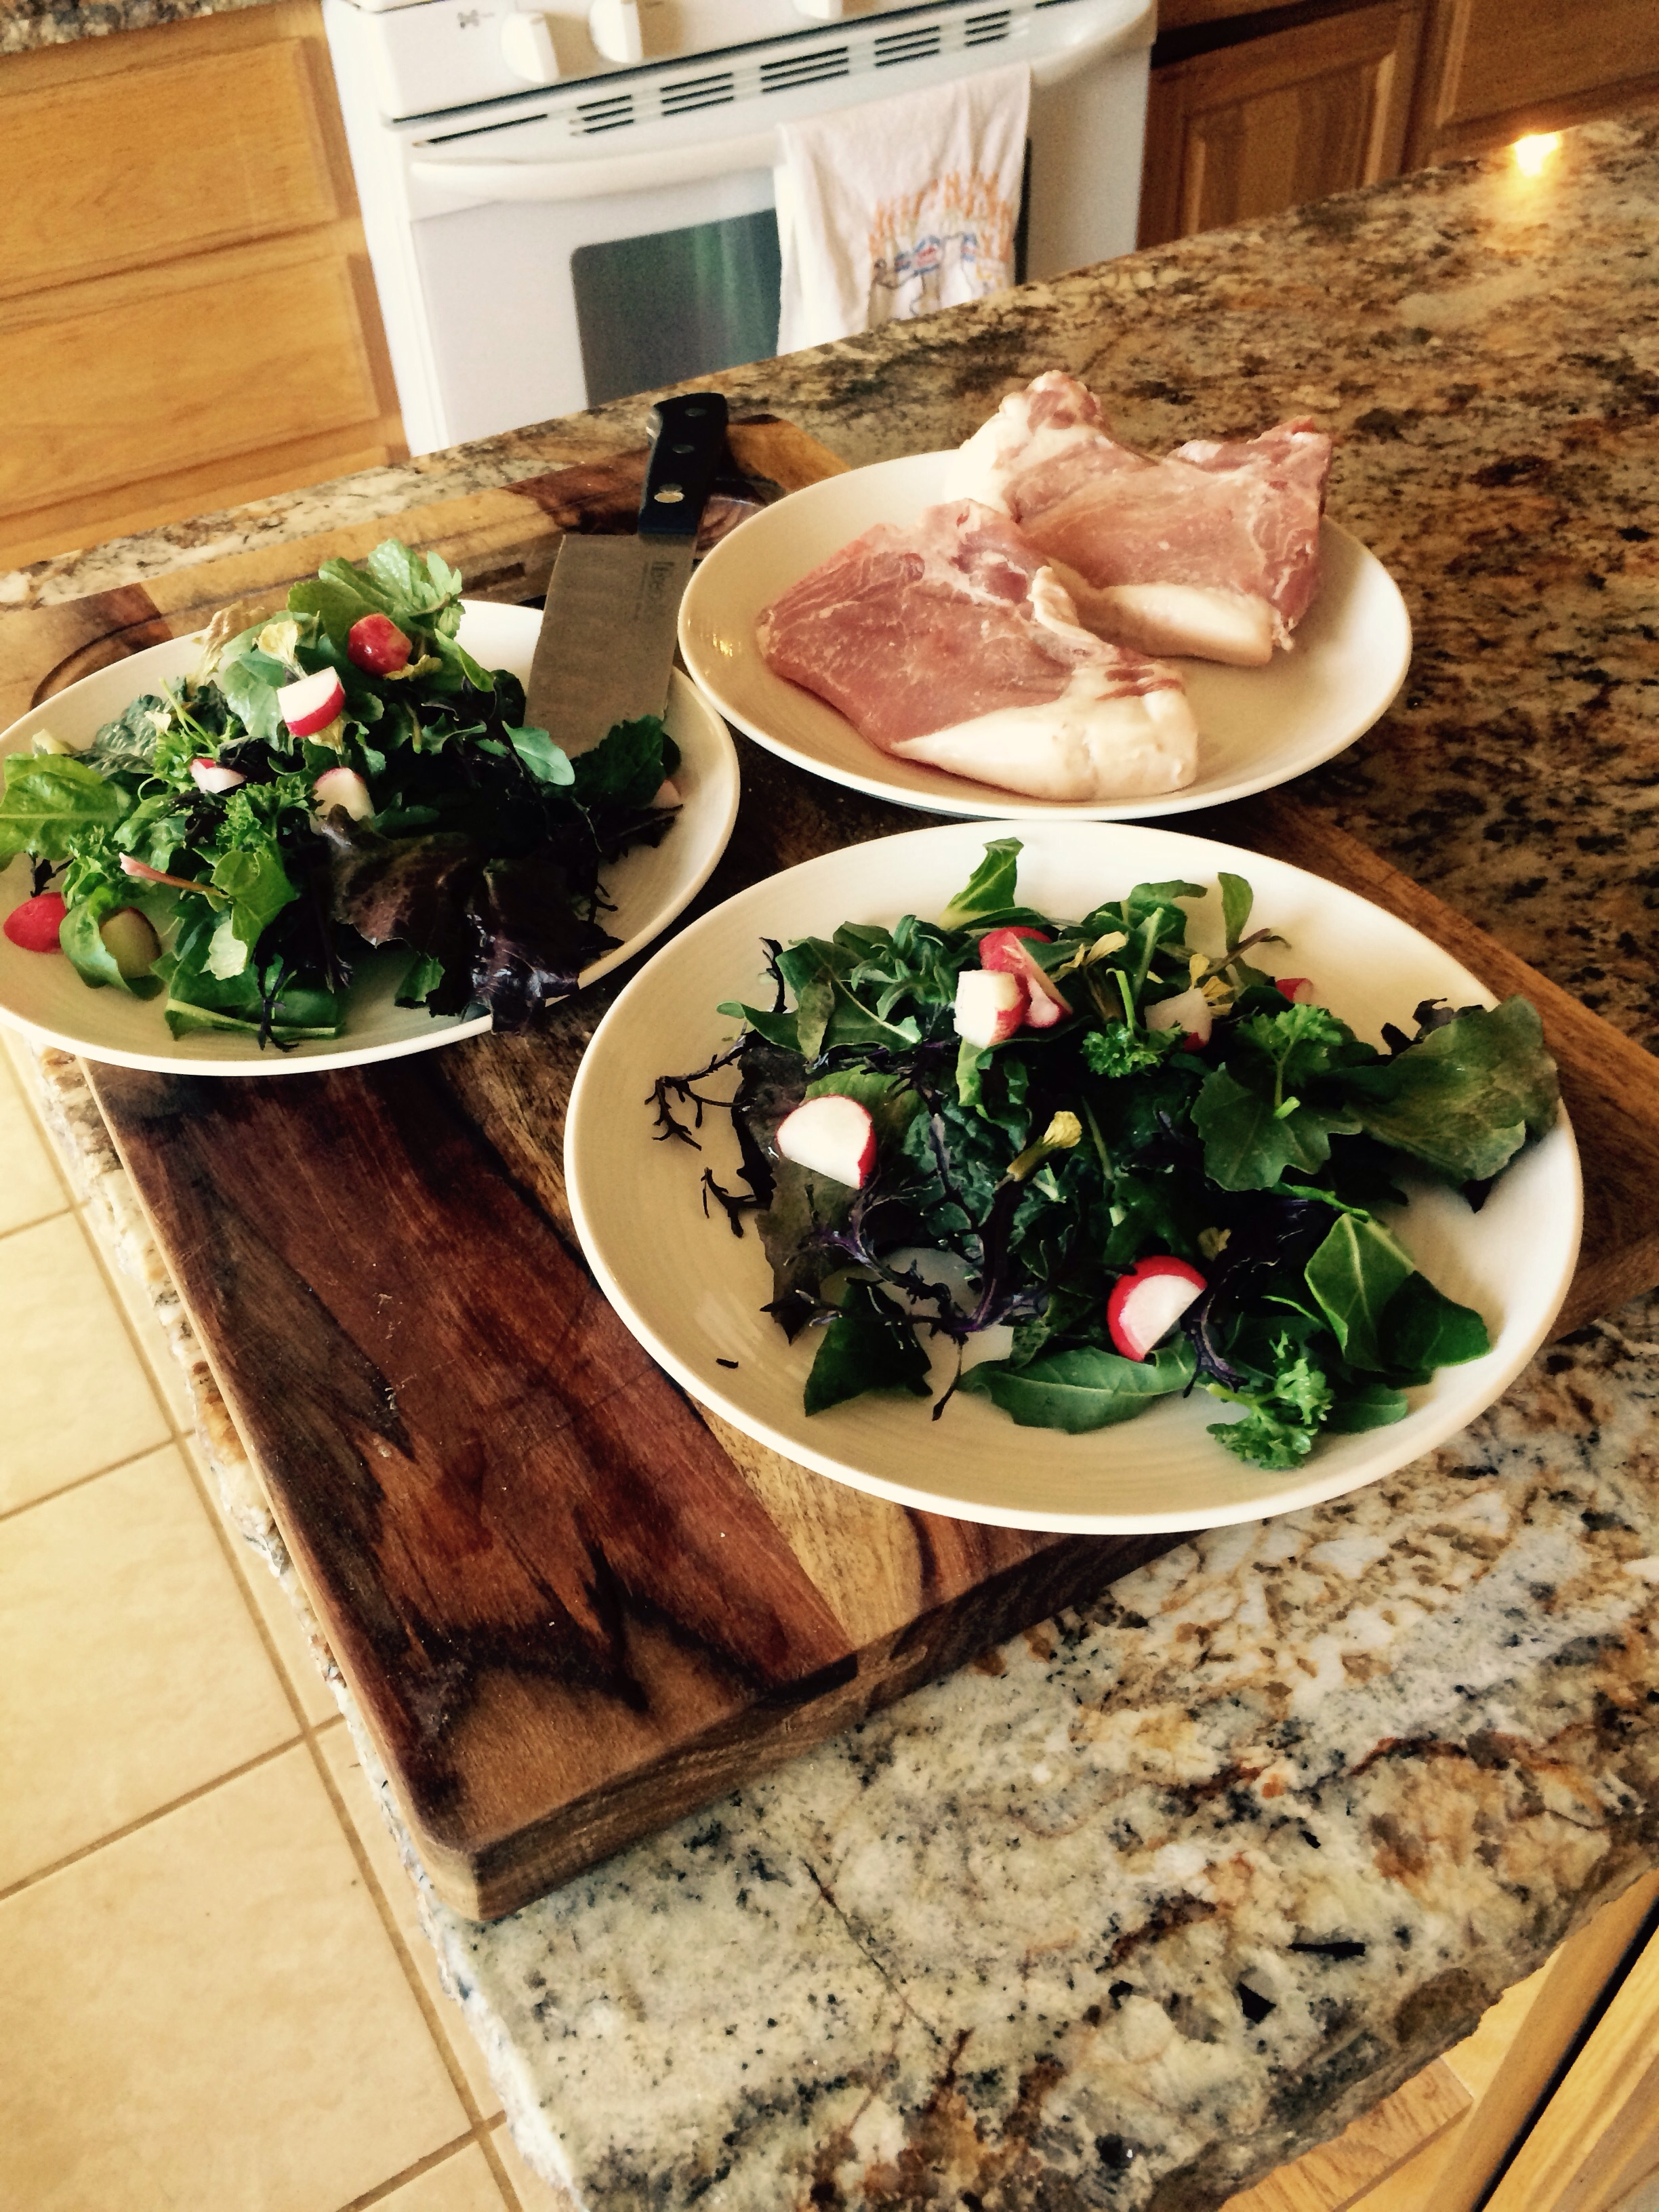 100 percent farm food winter greens and farm fresh red wattle pork chops cannot compare